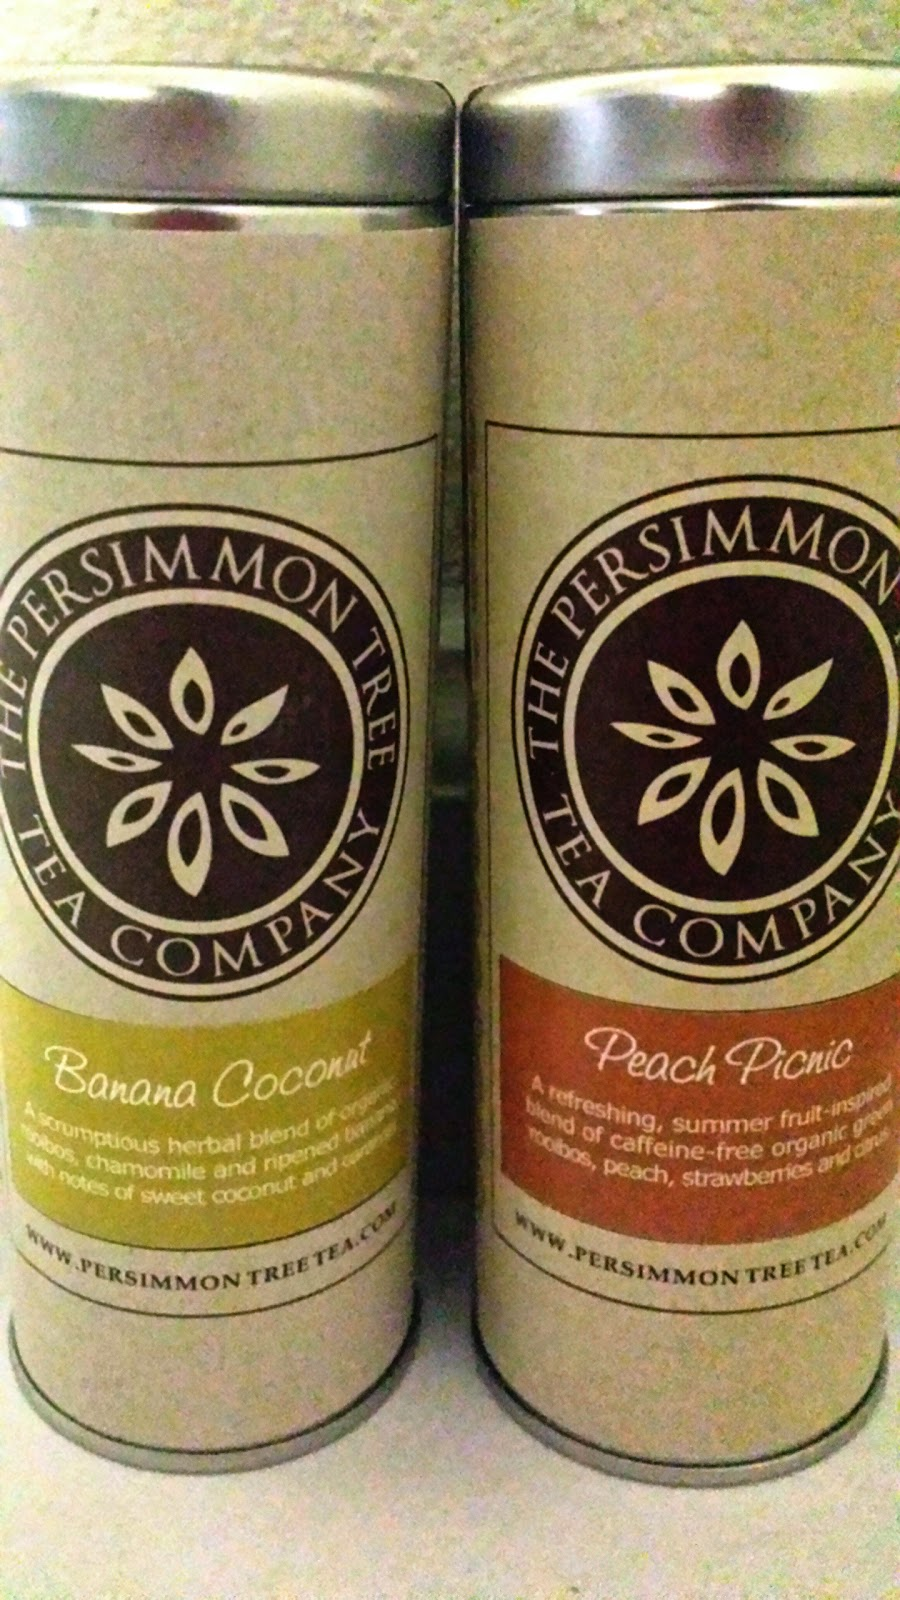 The Persimmon Tree Tea Company Peach Picnic and Banana Coconut Review via ProductReviewMom.com